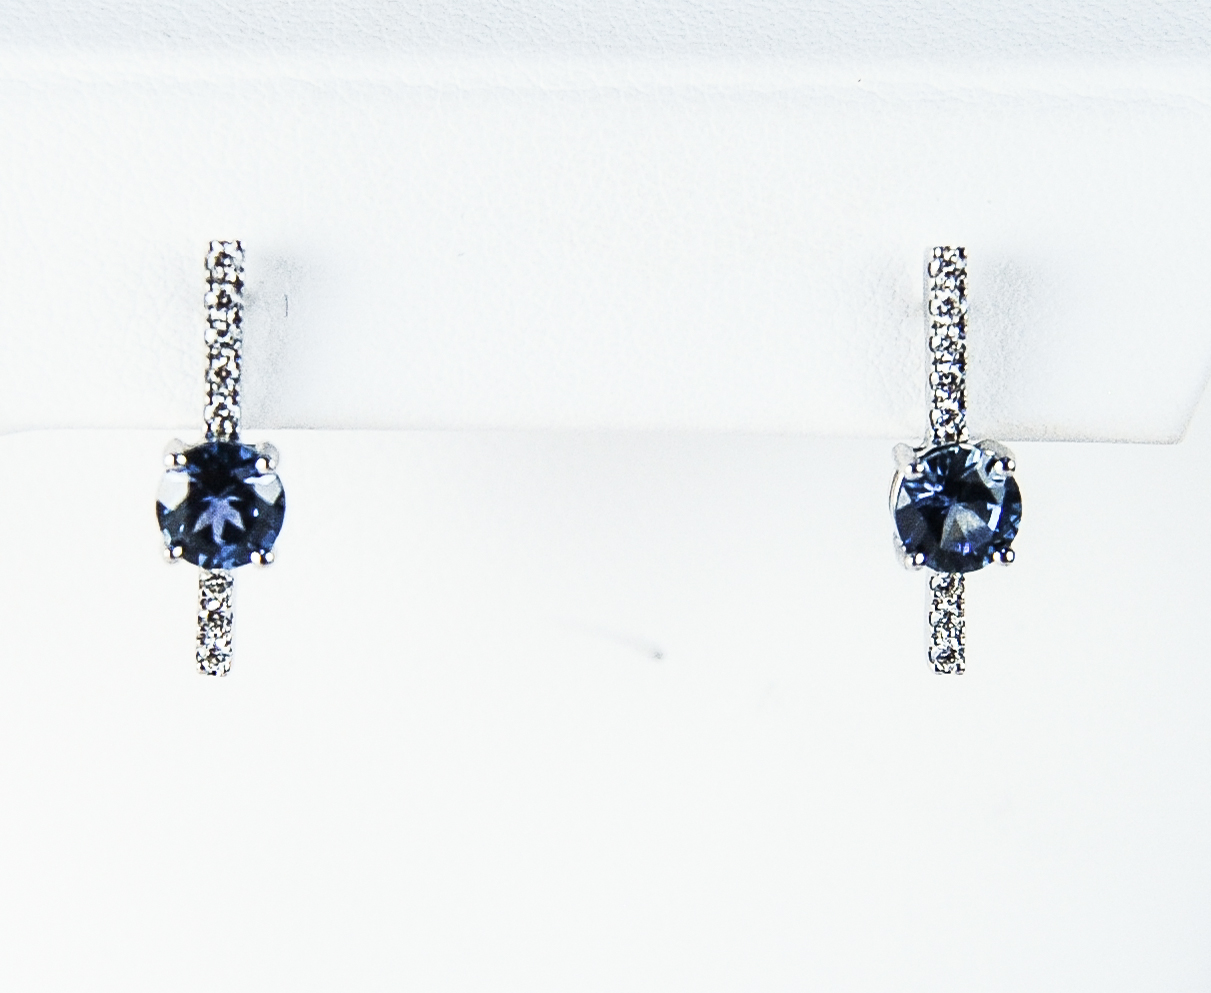 210-2217    14 Karat White Gold Drop Earrings With 2=1.18Tw Round MT Sapphires And 0.15Tw Round Diamonds $1,627.00